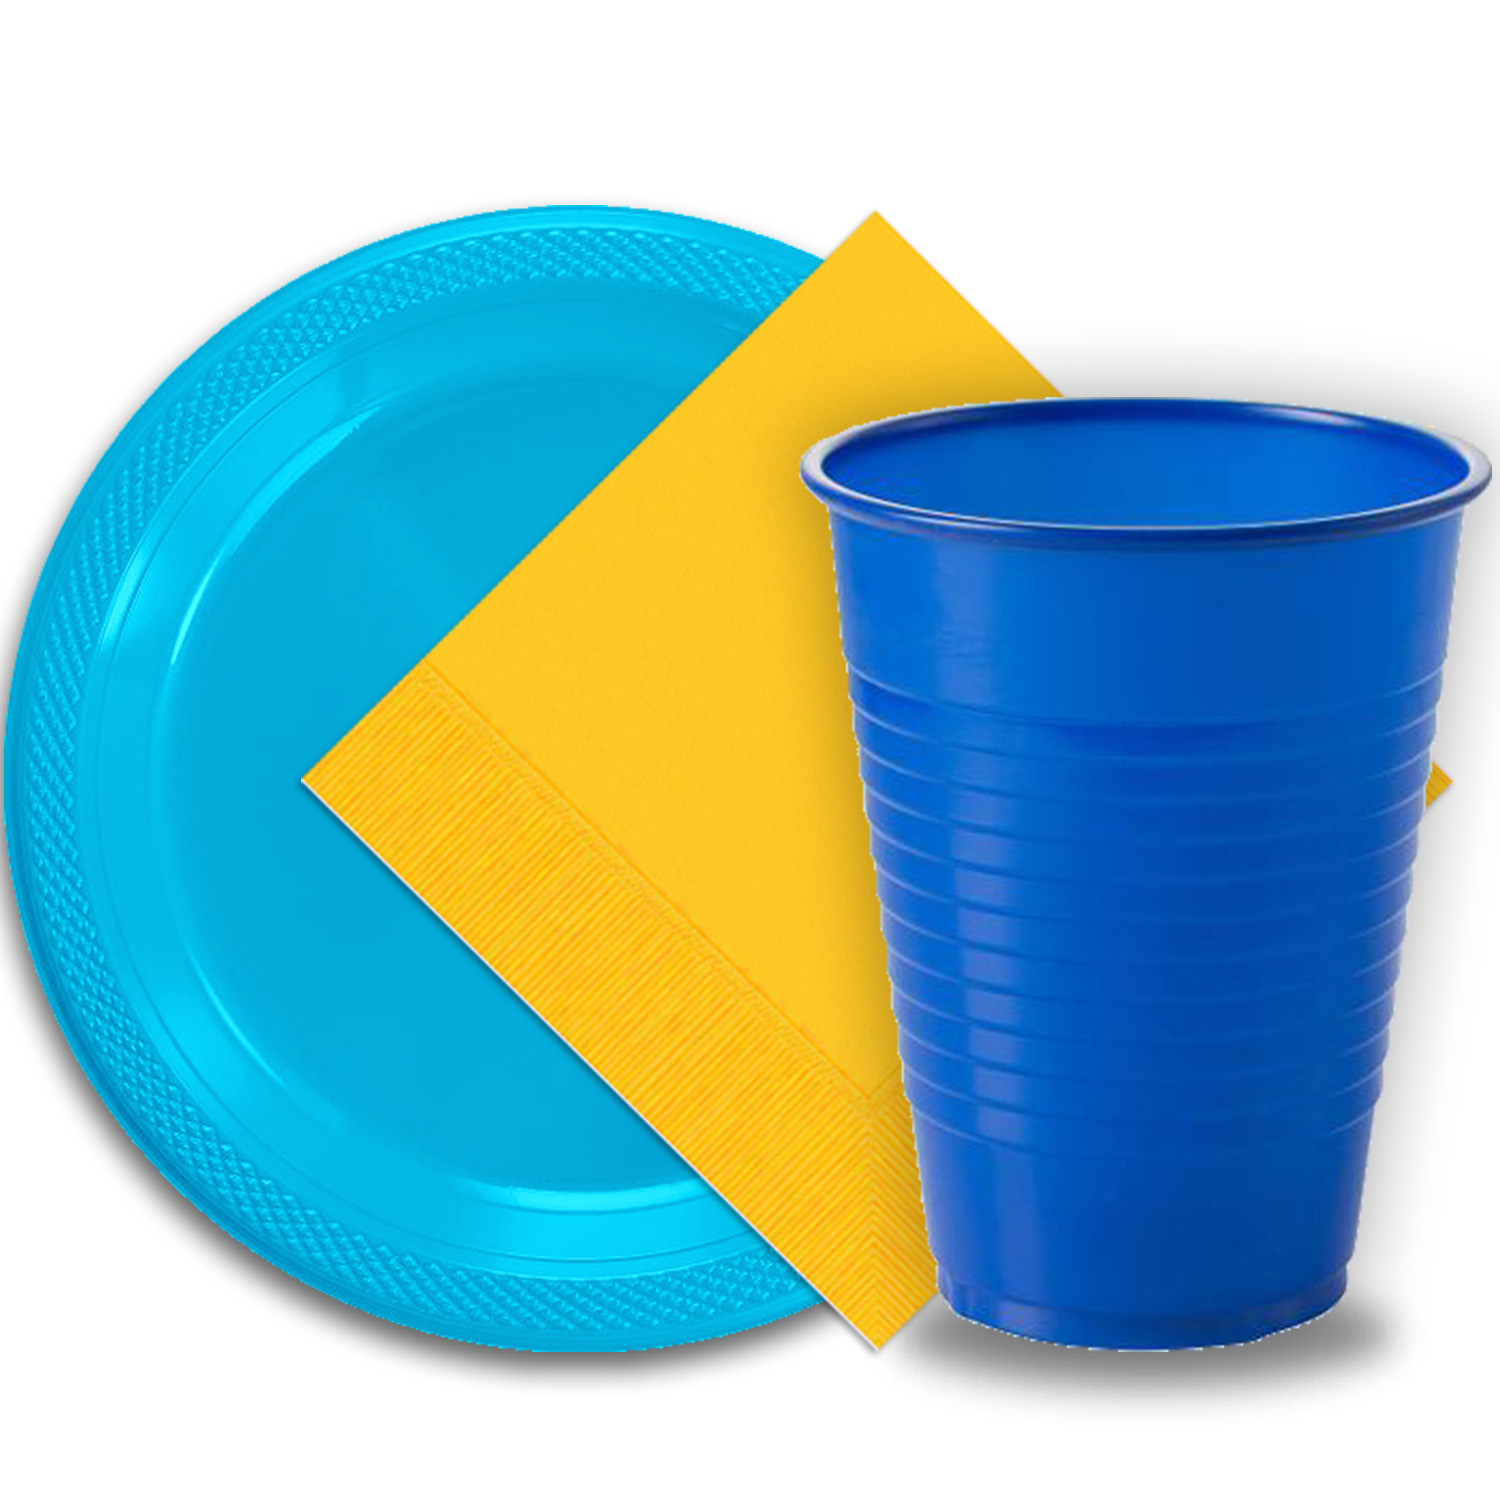 """50 Aqua Plastic Plates (9""""), 50 Dark Blue Plastic Cups (12 oz.), and 50 Yellow Paper Napkins, Dazzelling Colored Disposable Party Supplies Tableware Set for Fifty Guests."""